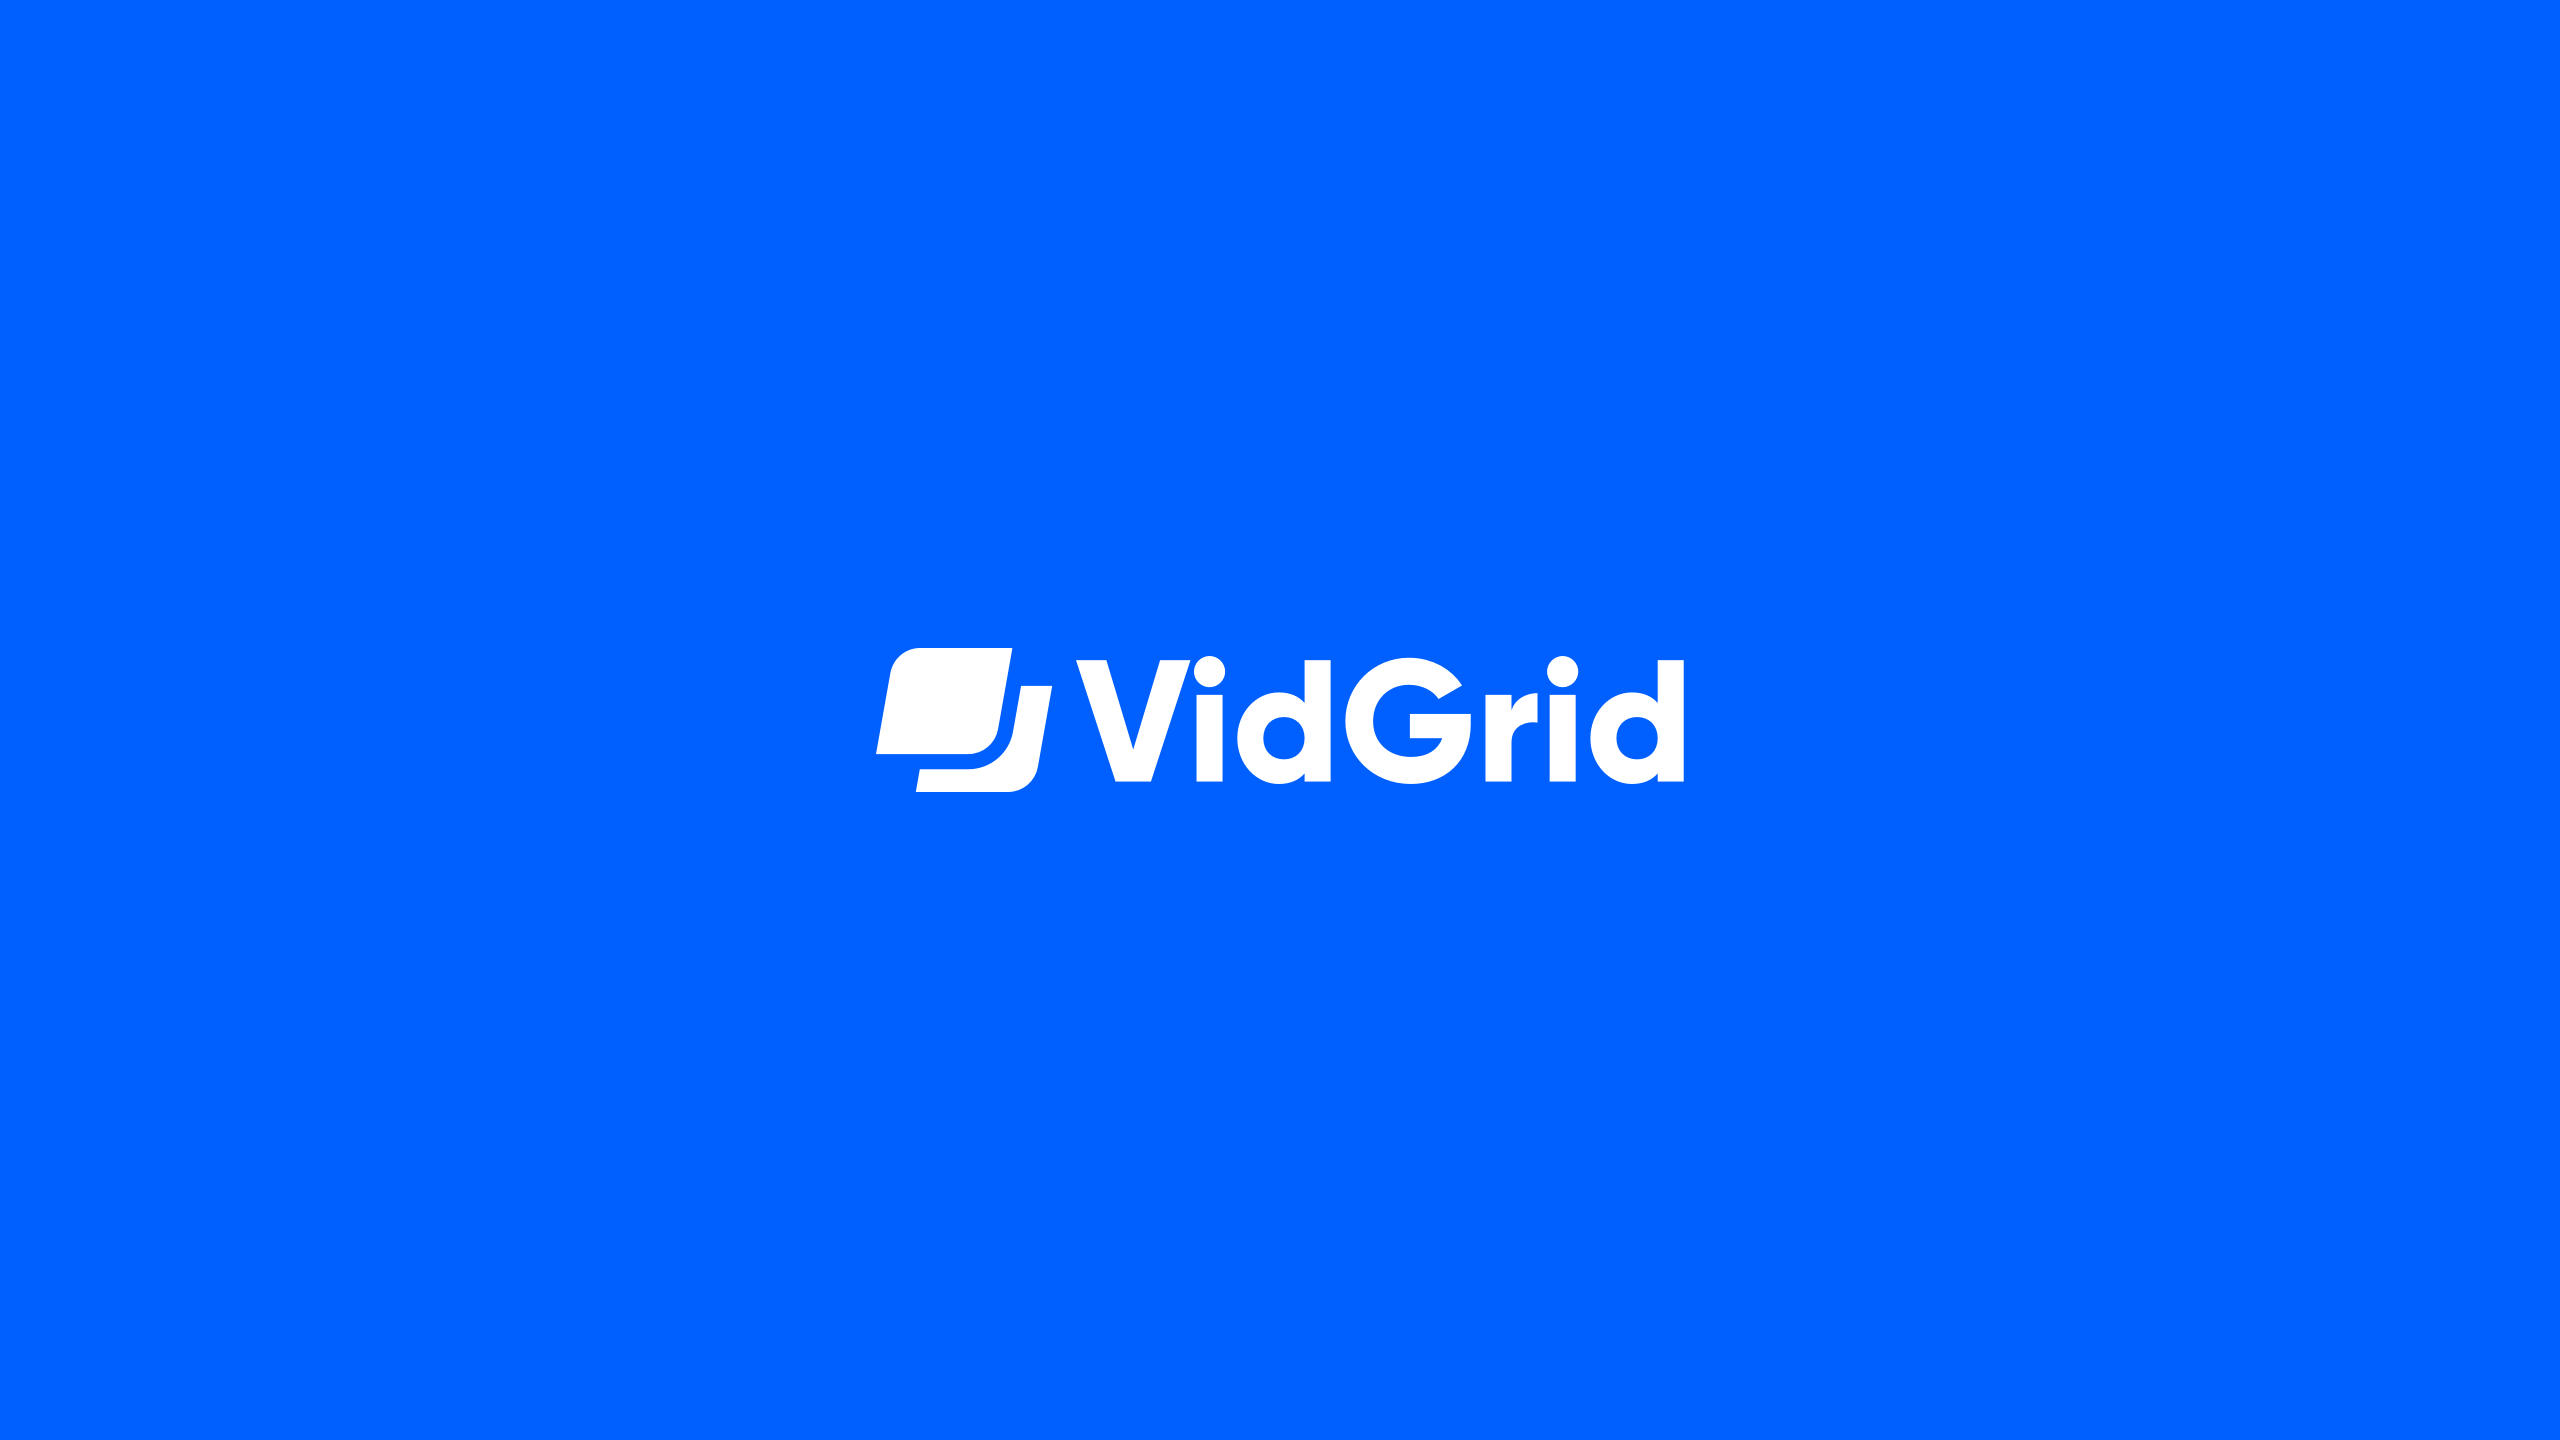 Introducing VidGrid: Video's Most Interactive Platform